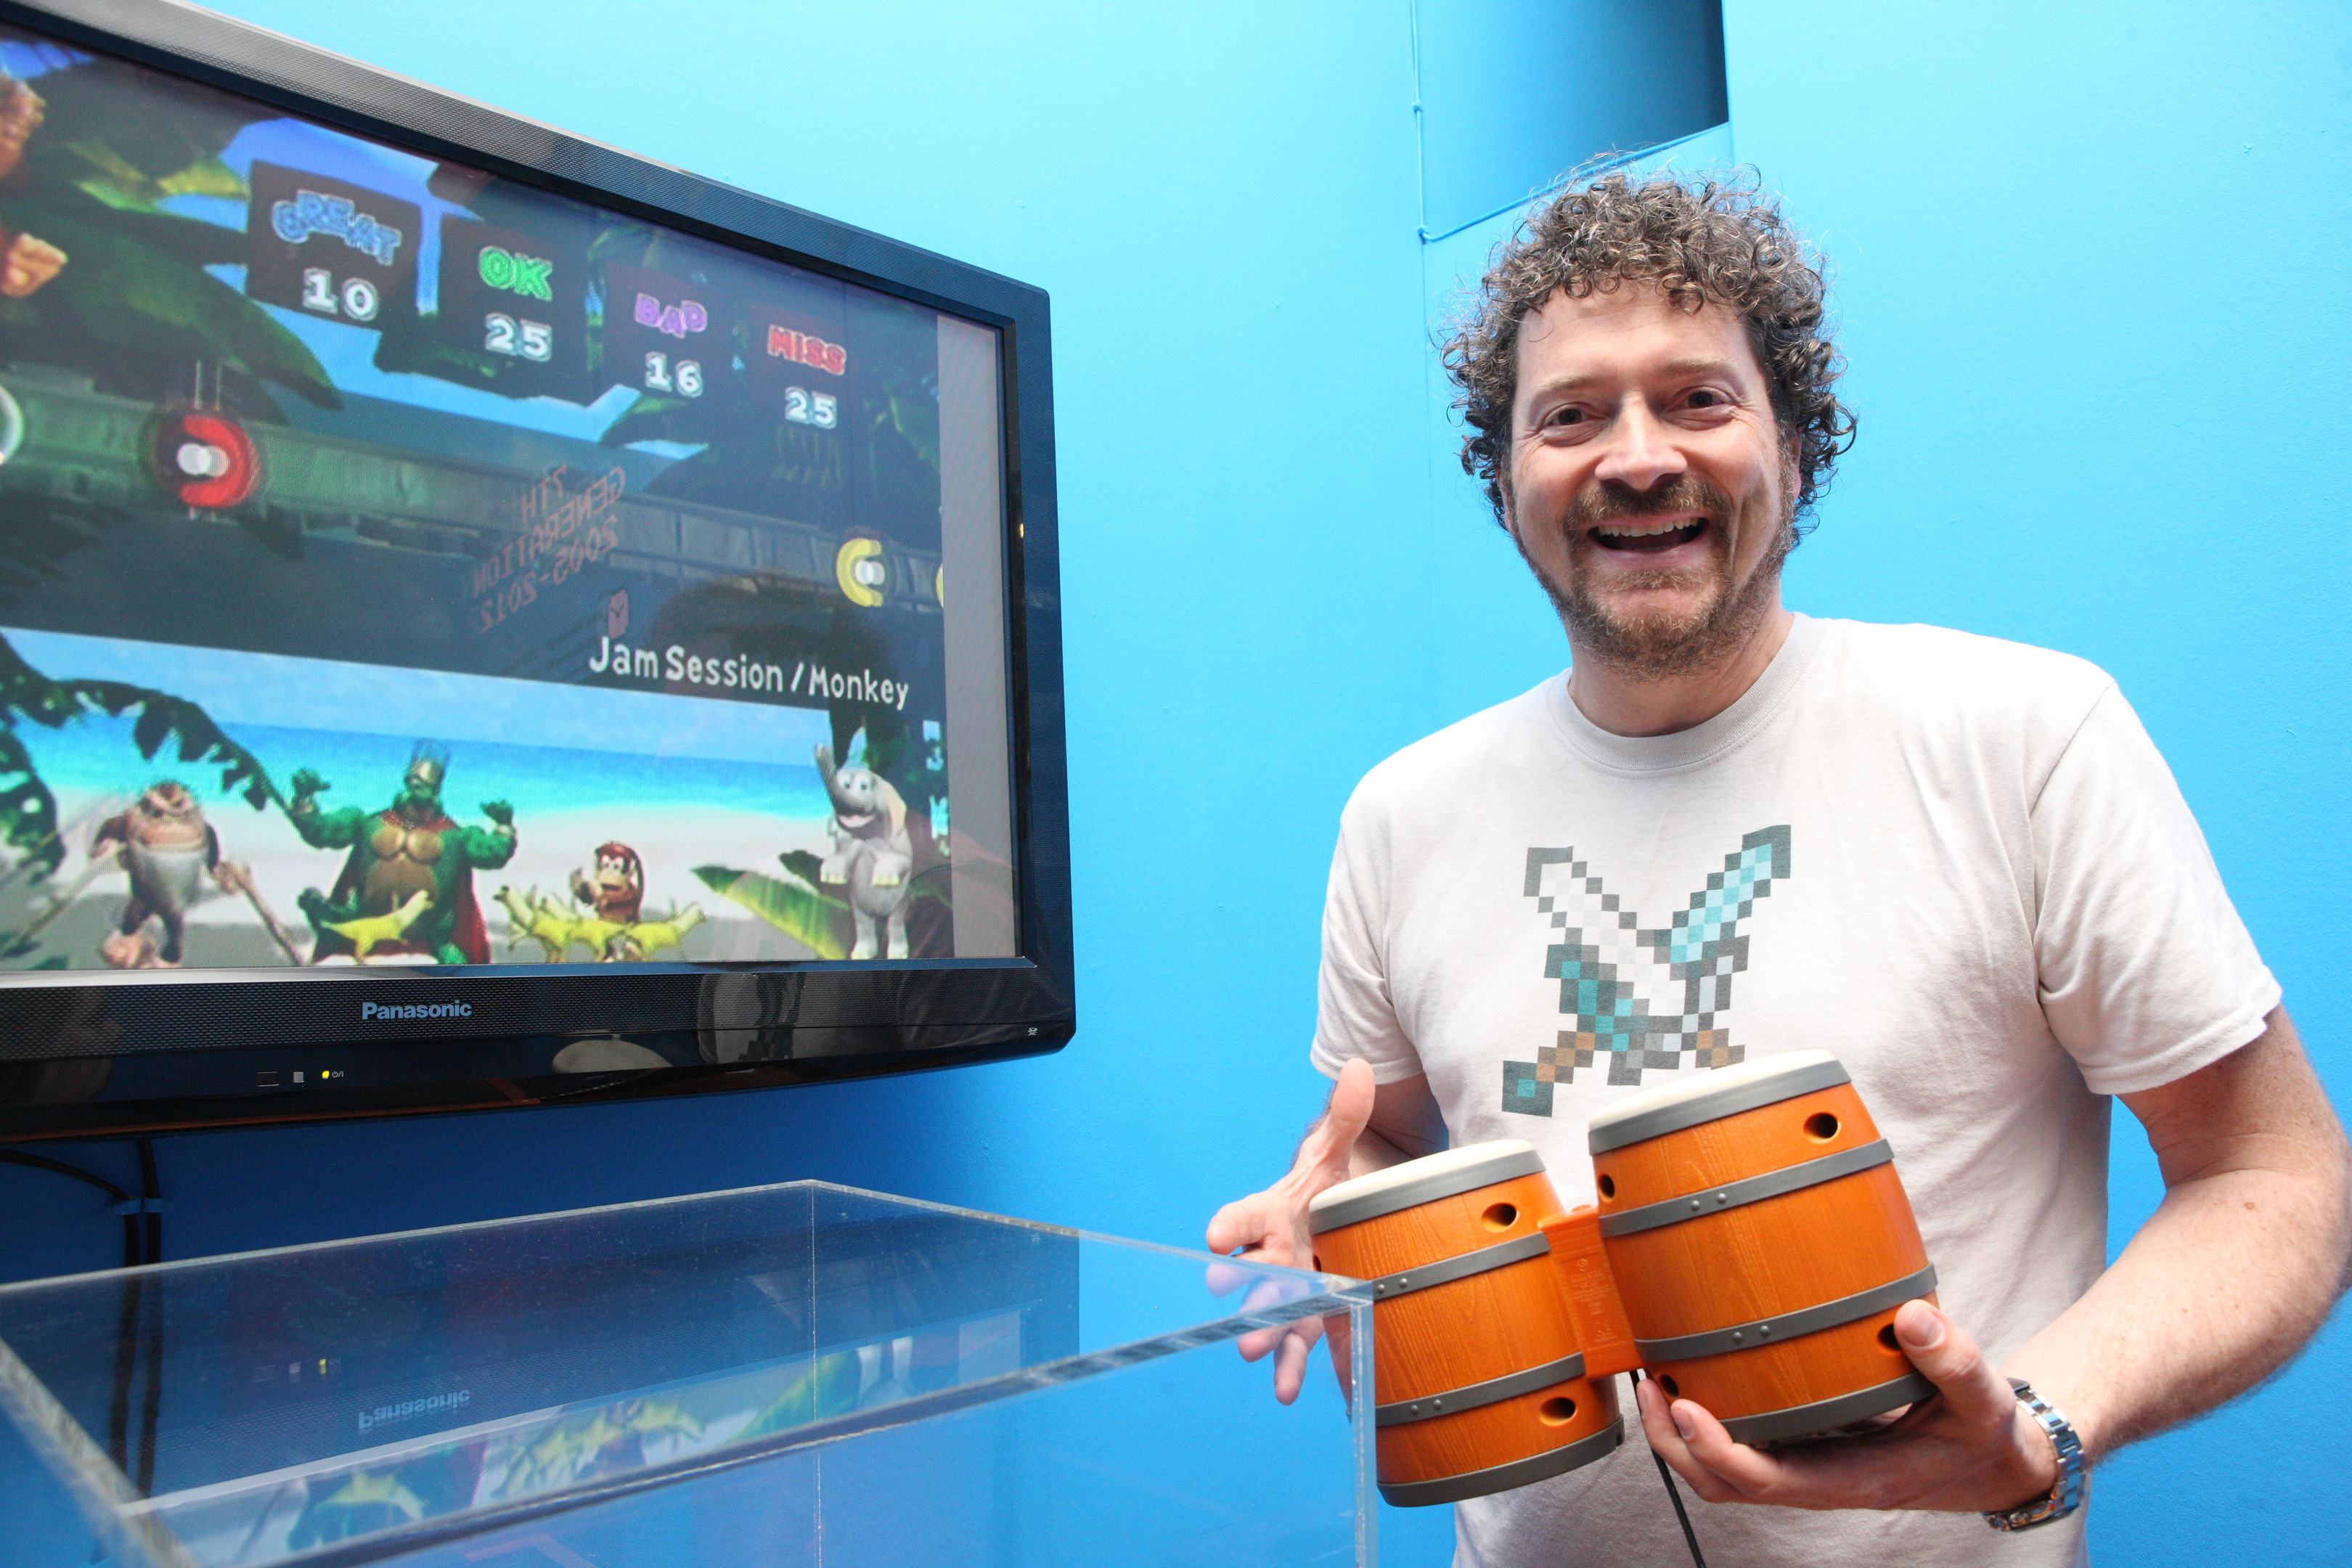 Chris van der Kuyl plays a video game at Perth Museum